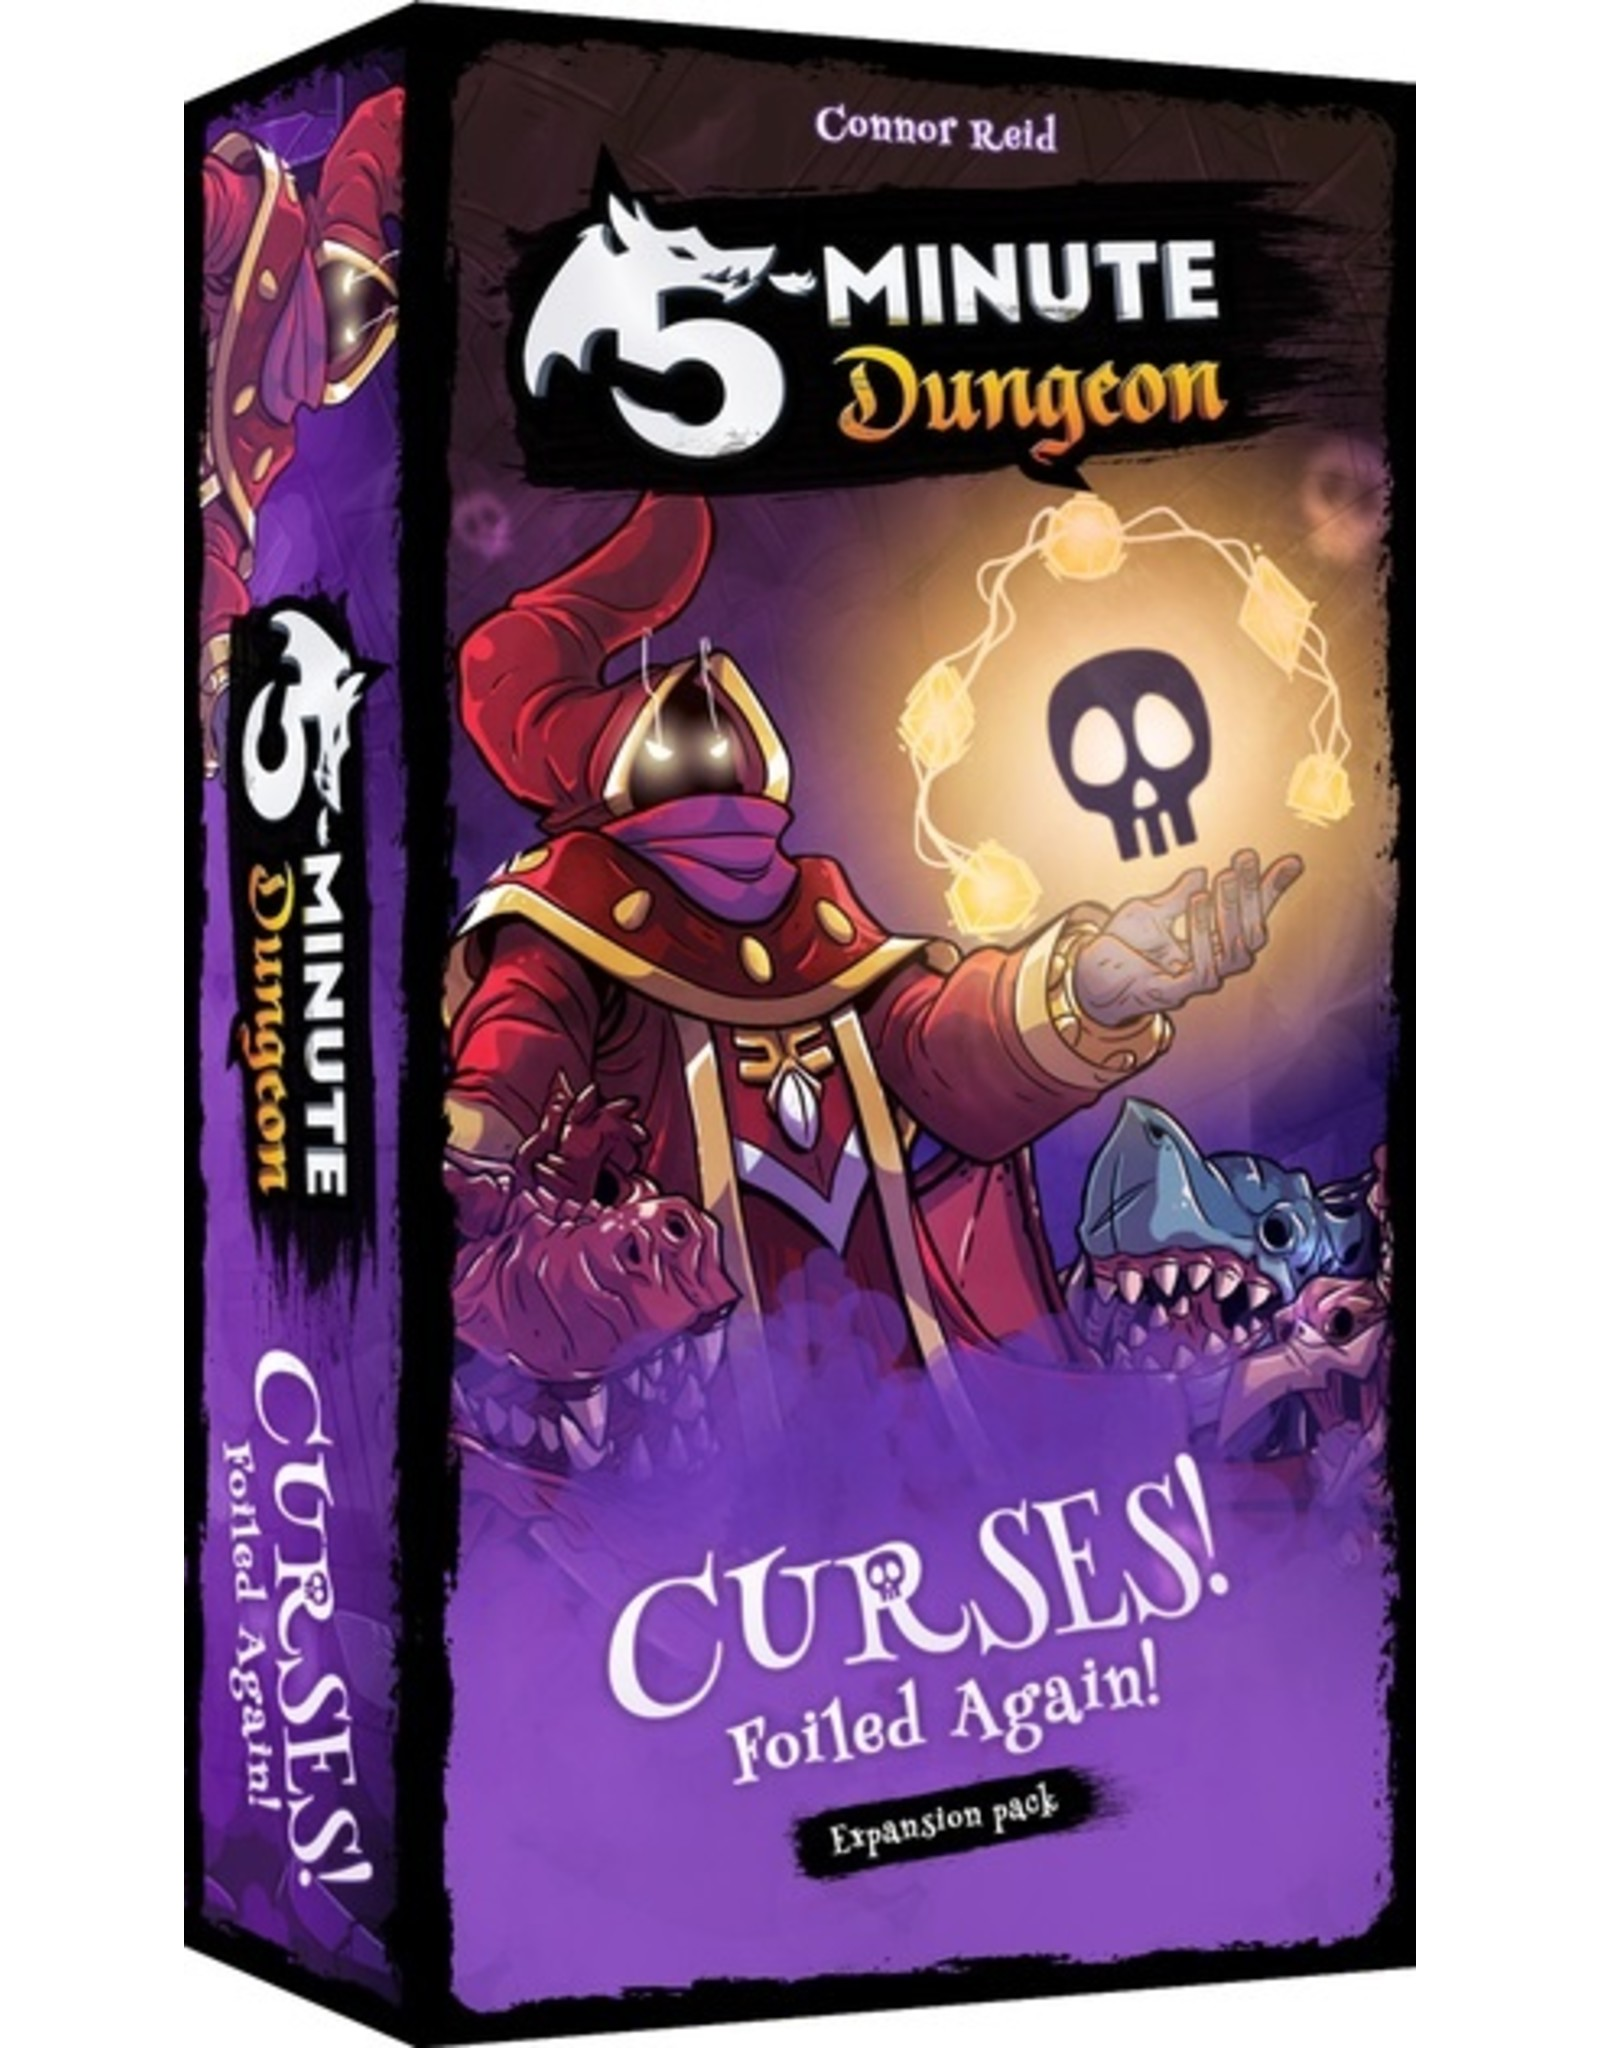 Spinmaster 5 Minute Dungeon: Curses Foiled Again